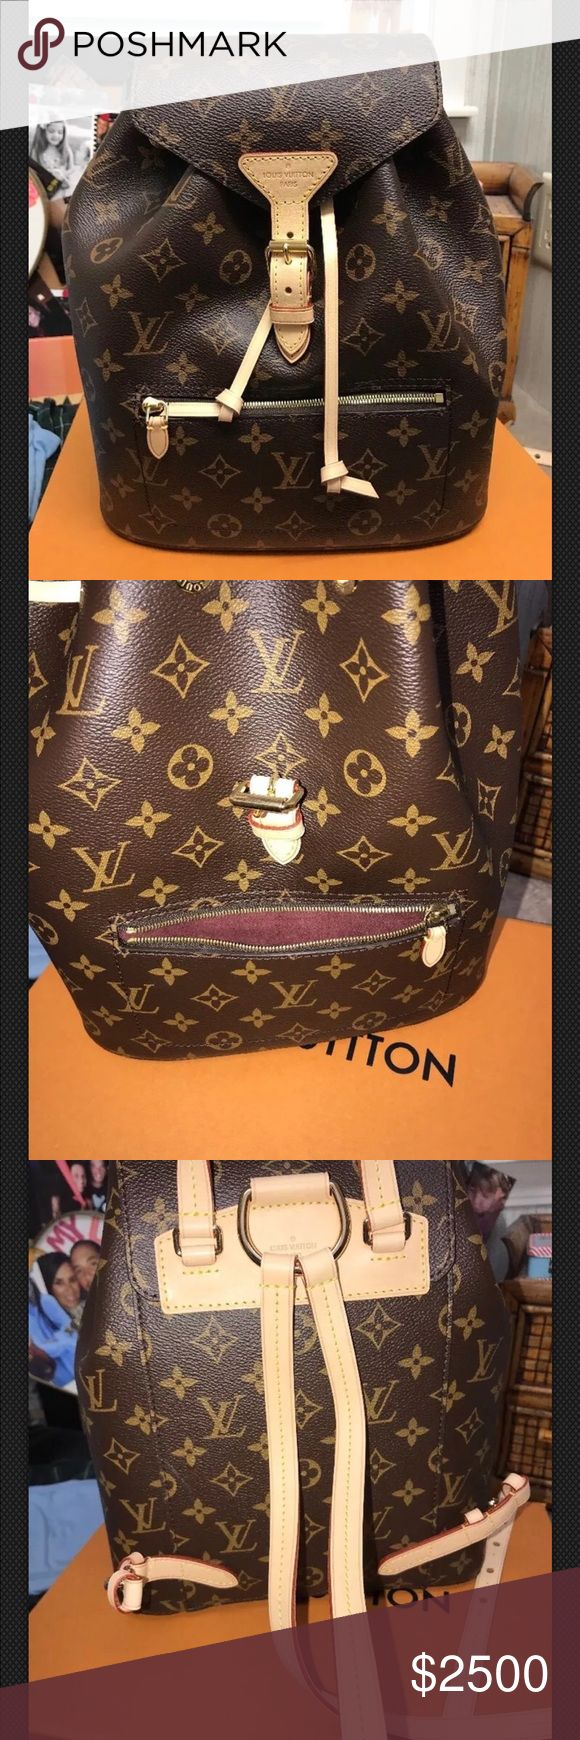 NWT Louis Vuitton Montsouris Gorgeous LV Montsouris Backpack Purse in original monogram print. Deep burgundy microfiber lining w gold hardware. My dad literally just got me the Seperone in Azur Damier in October + got me this one for Christmas bx he didn't know which one I would like, so he got both!! I have several luxury designer backpacks + definitely do not need another. Will take less via invoice by 🅿️🅿️ Cross posted. Louis Vuitton Bags Backpacks